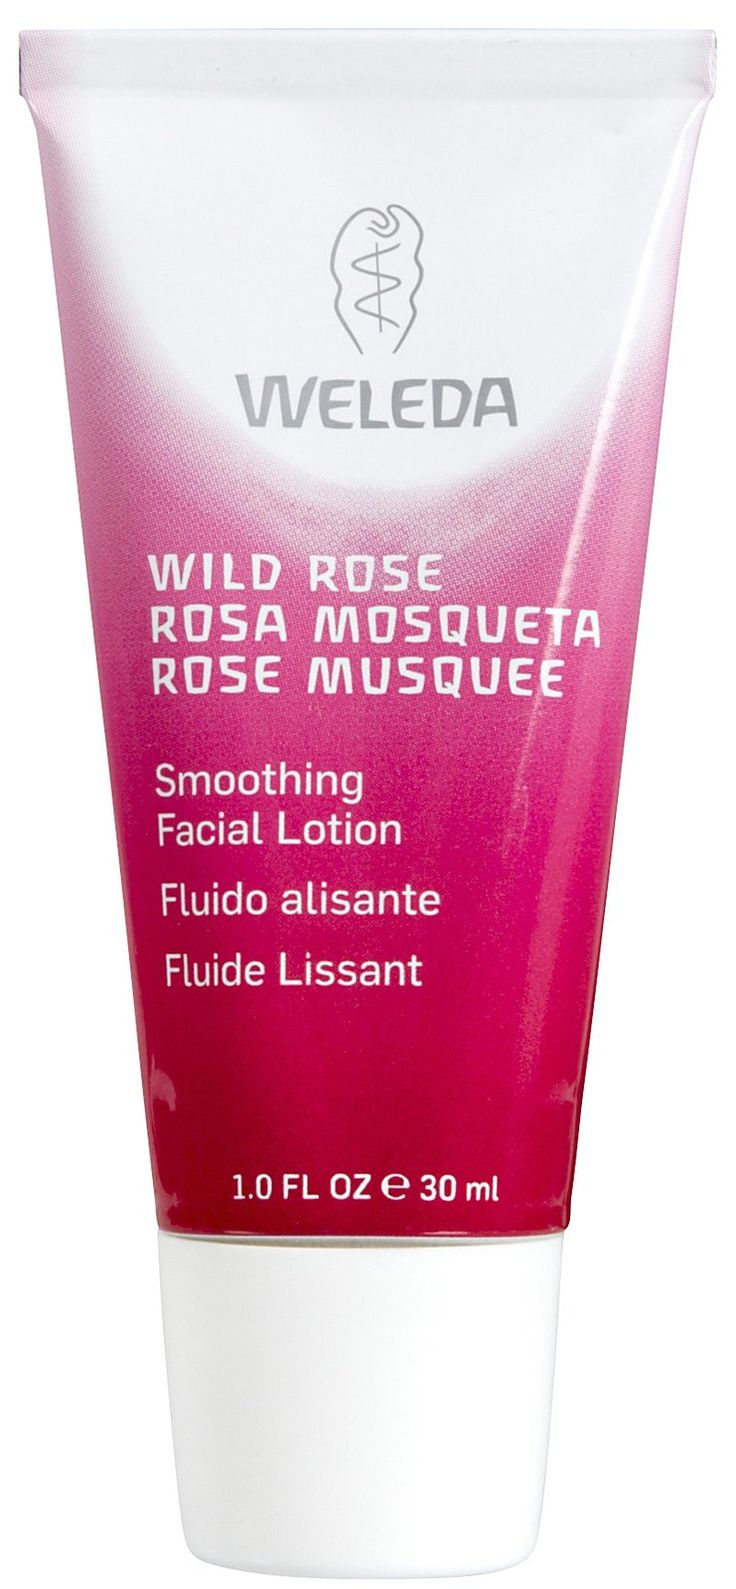 Weleda Wild Rose Smoothing Facial Lotion. My fave.